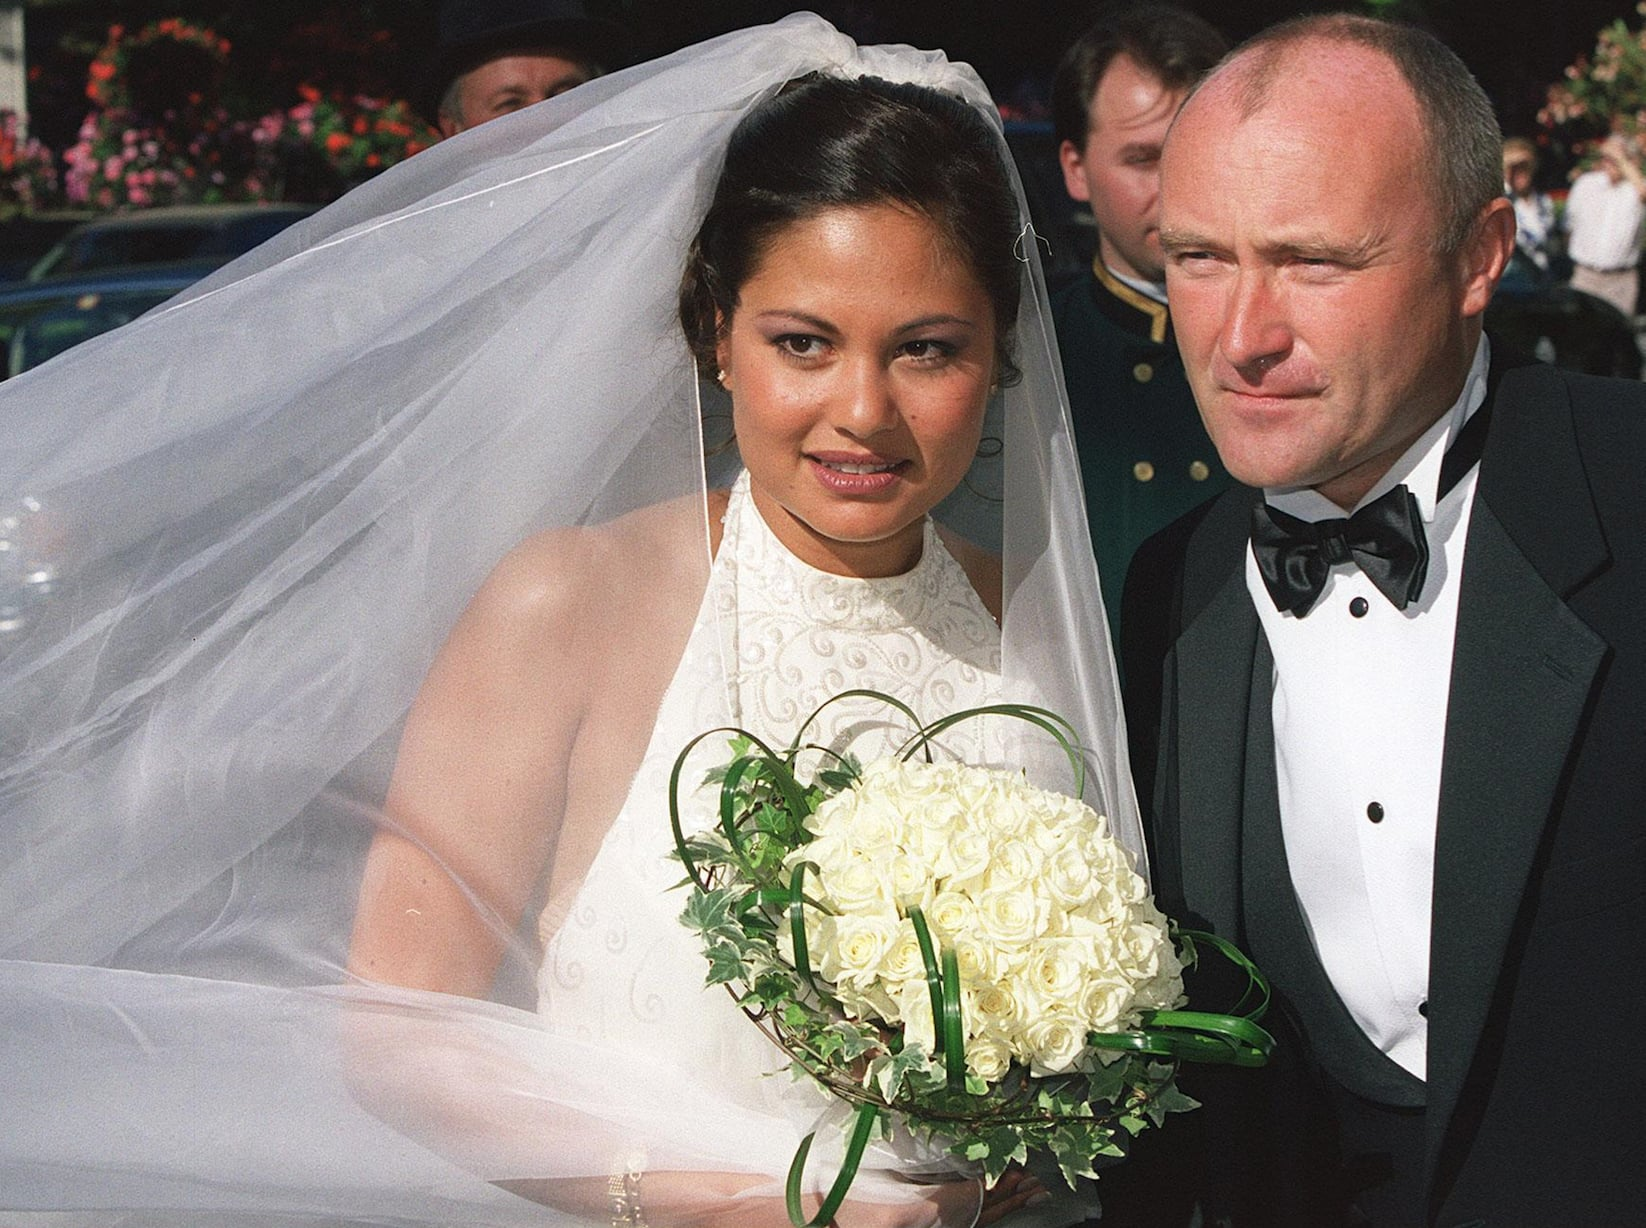 Phil Collins To Re Marry Third Ex Wife Orianne Cevey The Hollywood Gossip Collins has been walking with the aid of a stick since his fall last year (picture: re marry third ex wife orianne cevey